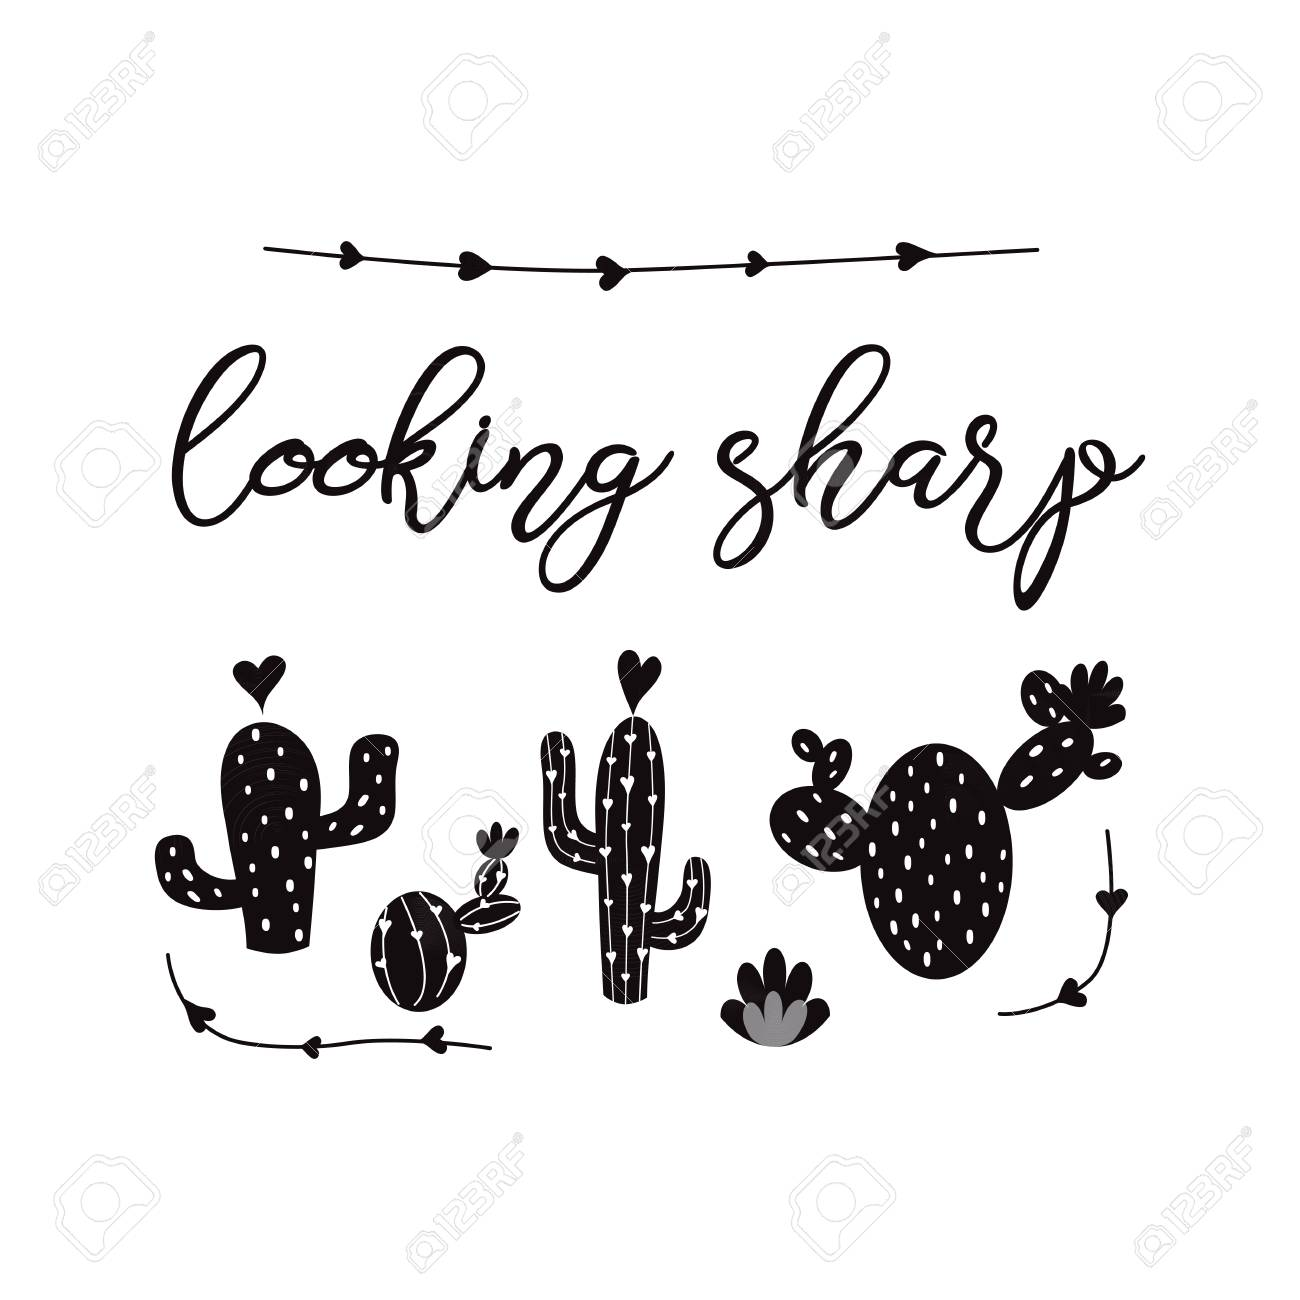 Looking Sharp Vector Card Cute Hand Drawn Prickly Cactus Print With